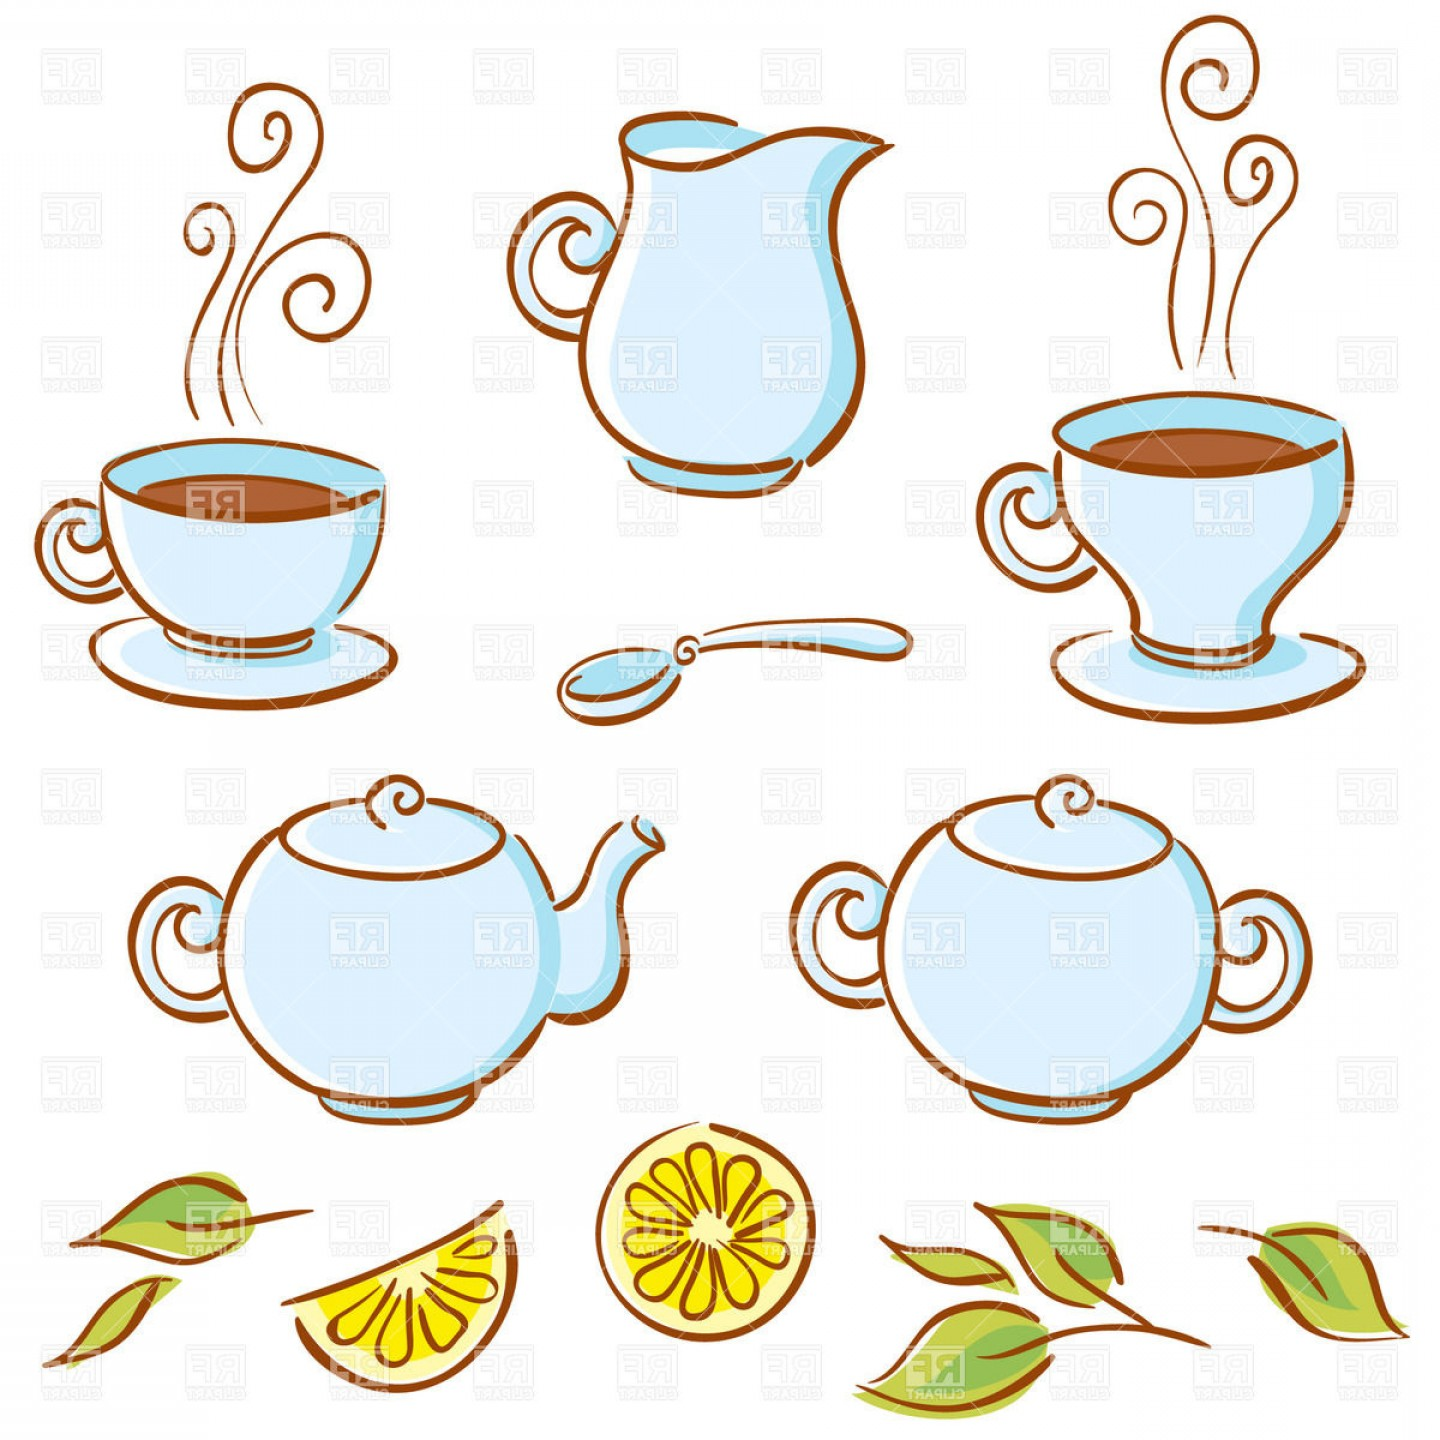 Tea Set Vector: Background With Cartoon Tea Set Lemon And Cup Of Coffee Sugar Bowl Teapot Cup Saucer Spoon And Milk Jug Vector Clipart